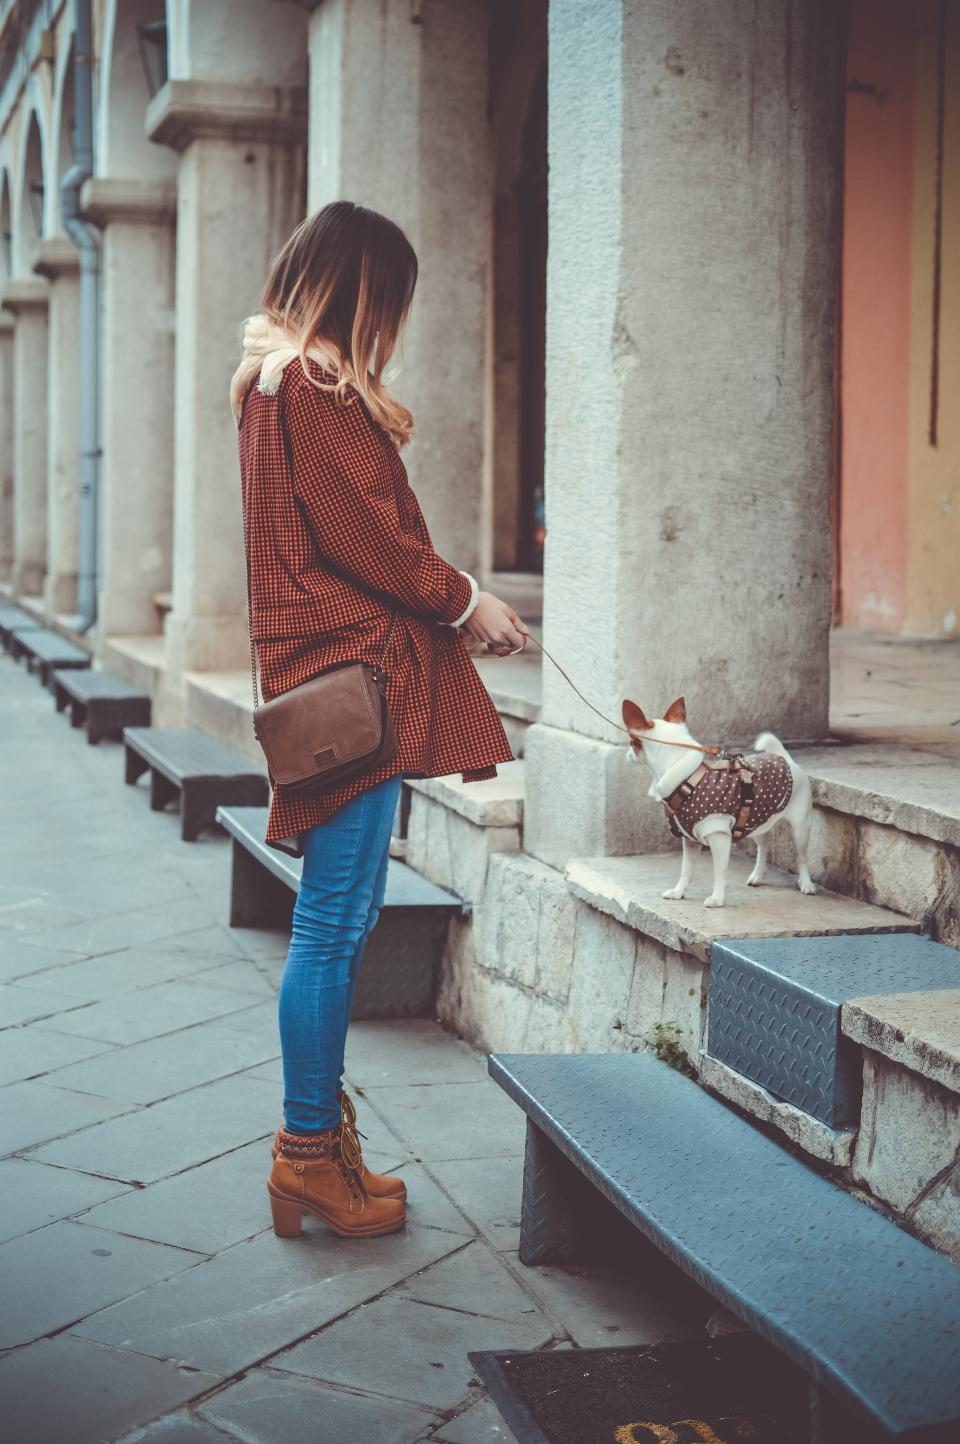 people, woman, fashion, boots, street, dog, puppy, pet, stroll